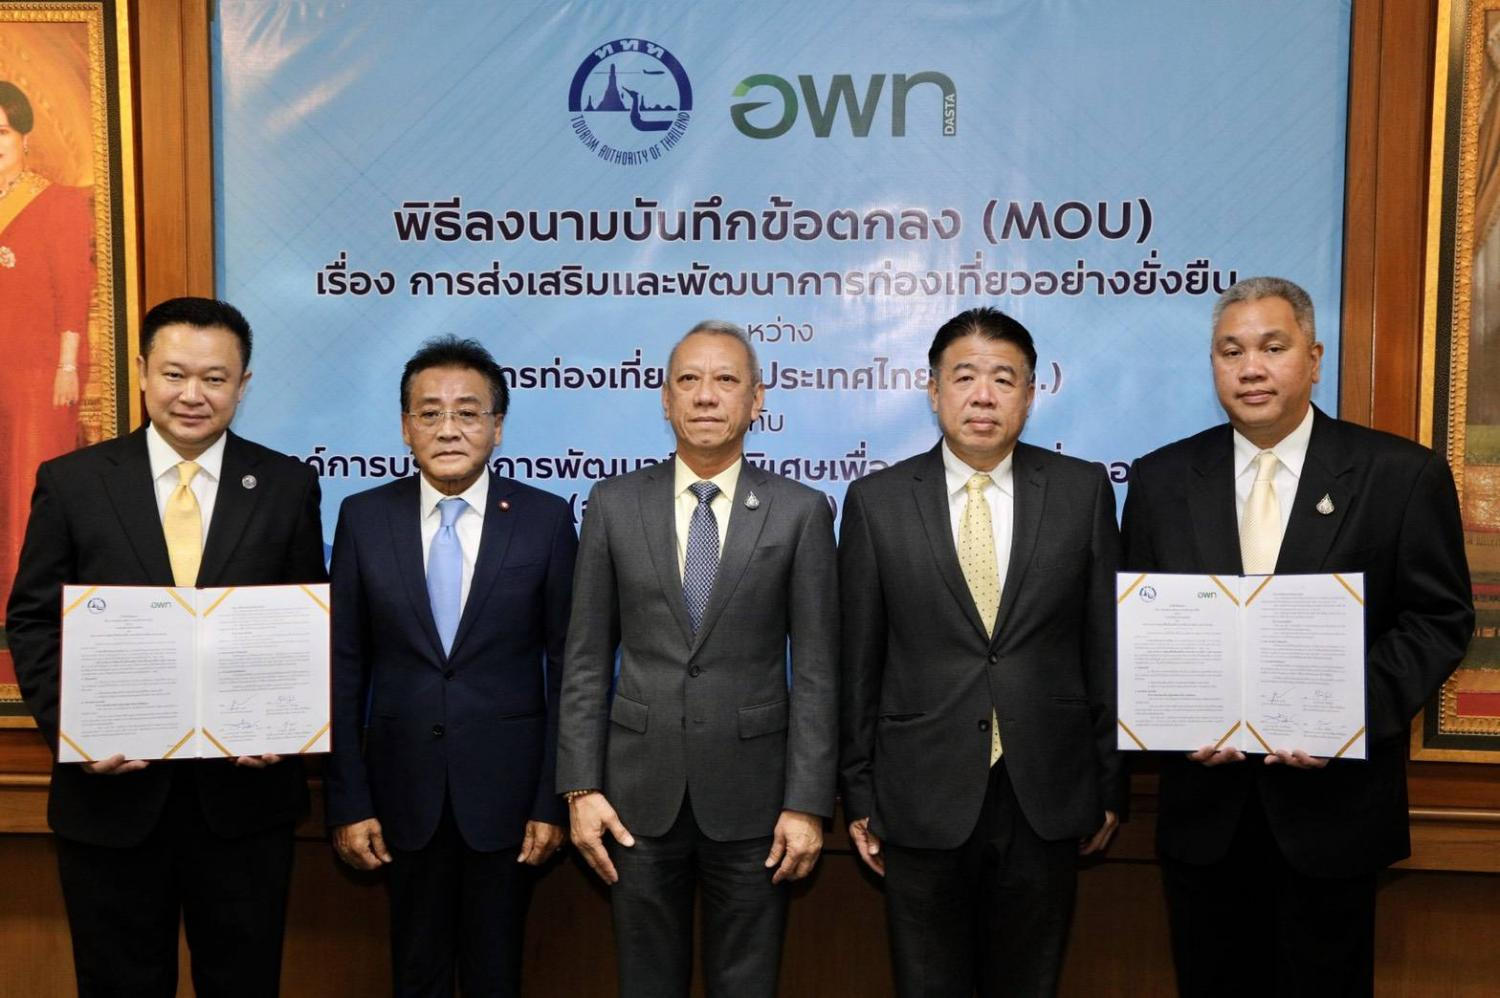 Mr Phiphat (centre), Mr Yuthasak (left) and Mr Thaweepong (right) at the MoU signing ceremony.